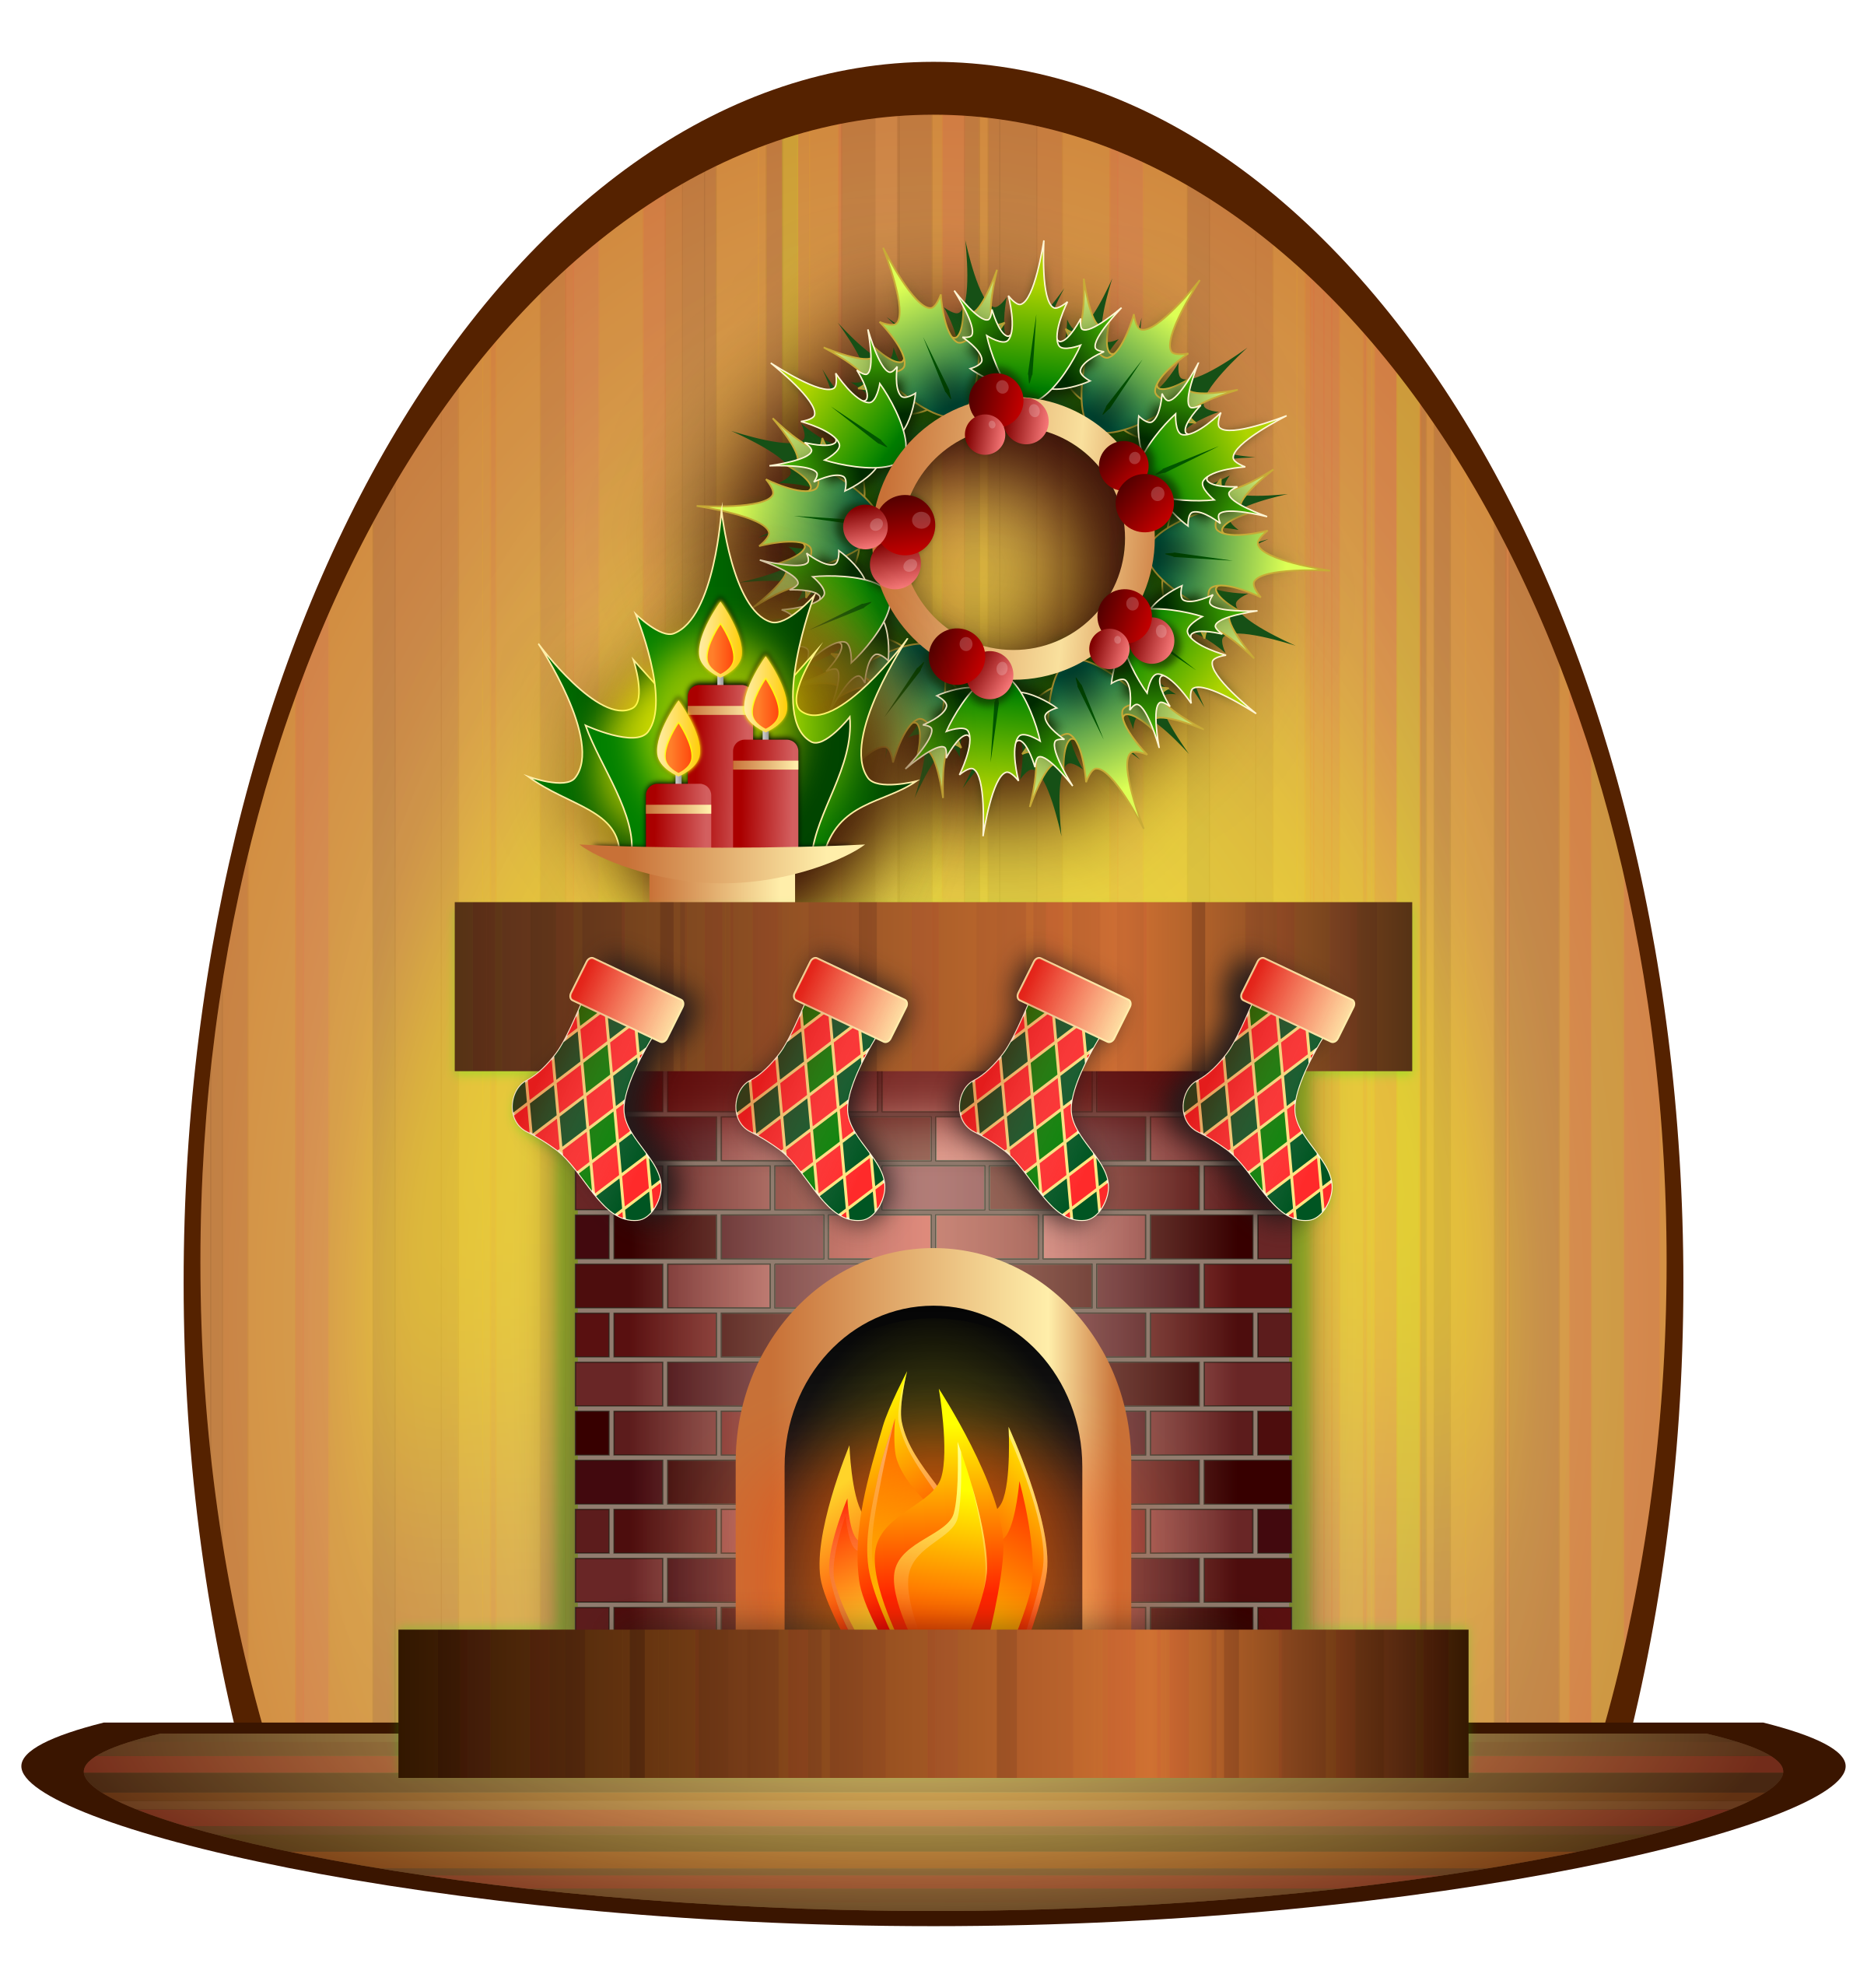 Fireplace clipart victorian fireplace. Christmas big image png